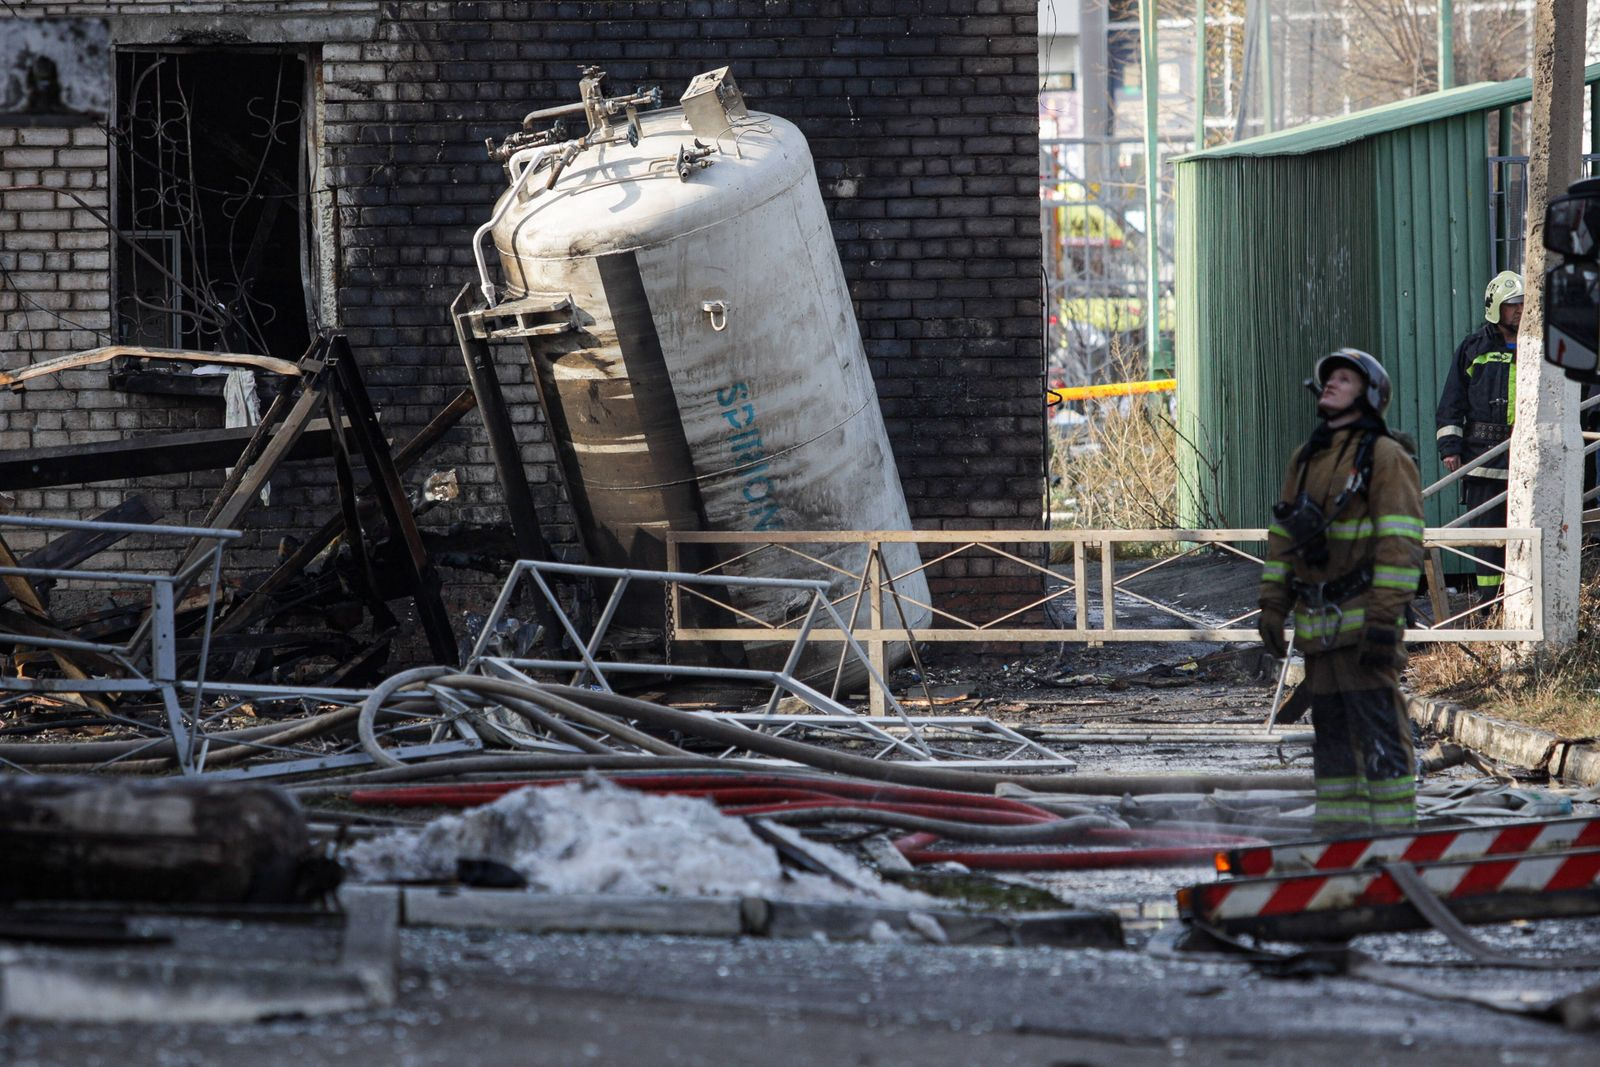 CHELYABINSK, RUSSIA - OCTOBER 31, 2020: Employees of the Russian Emergencies Ministry at the site of a fire at a hospita